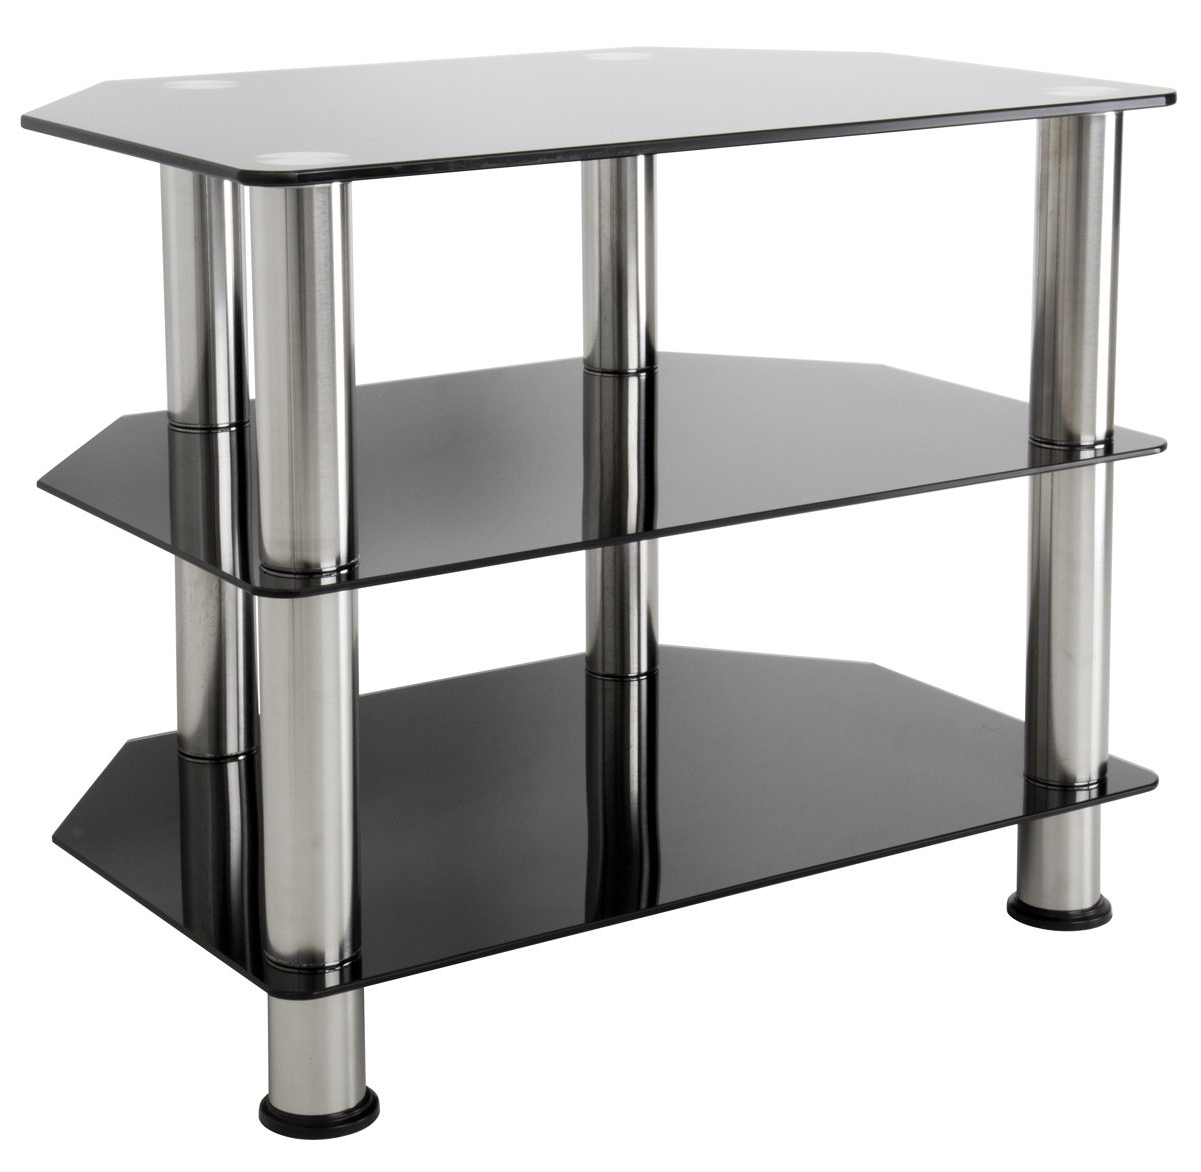 Best And Newest Avf Sdc600 Tv Stands Inside Universal 24 Inch Tv Stands (View 6 of 20)